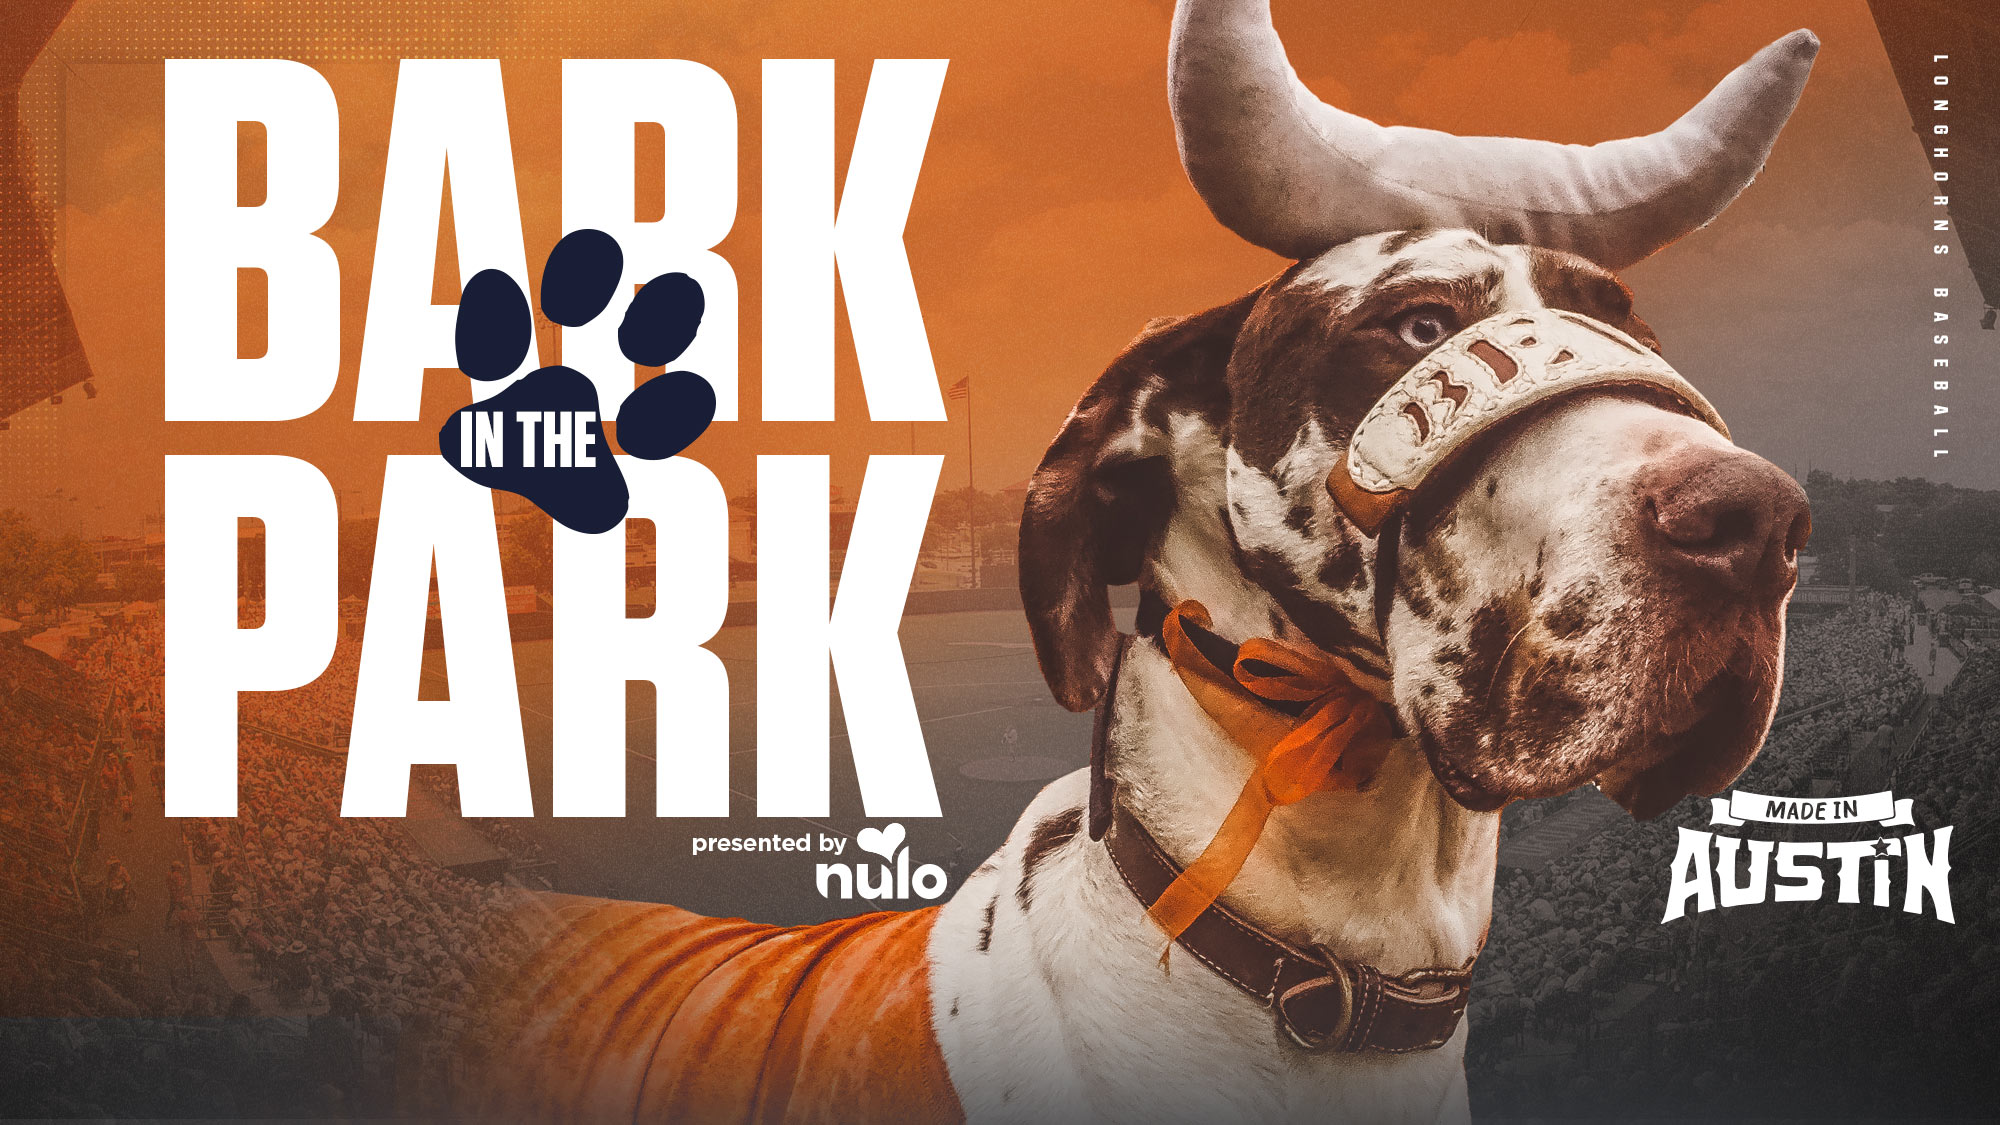 Baseball announces inaugural 'Bark in the Park' presented by